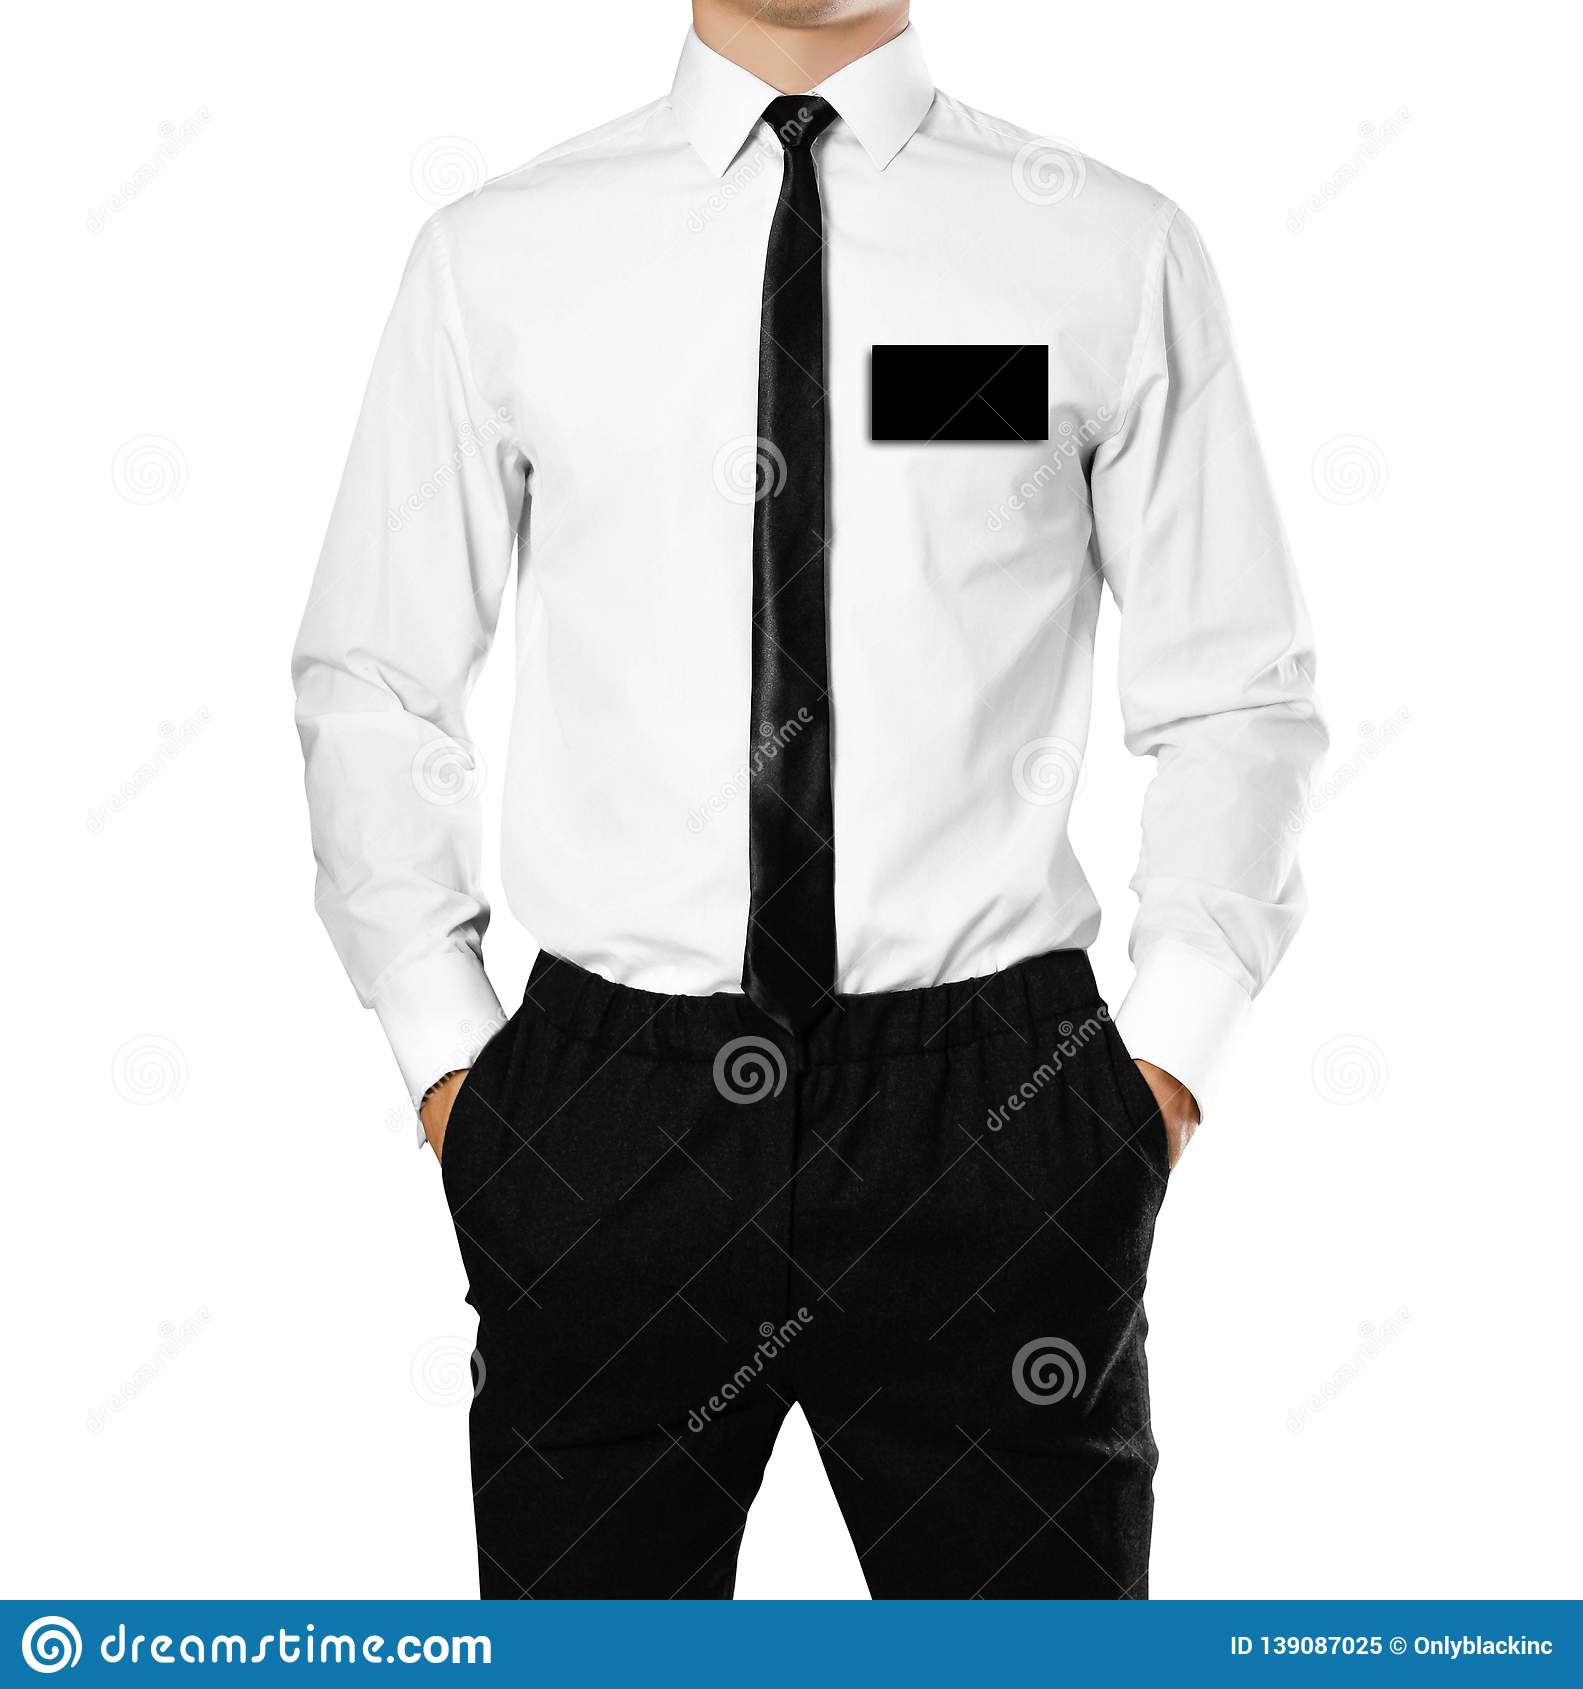 A man in a white shirt with a badge. Close up. Isolated on white background